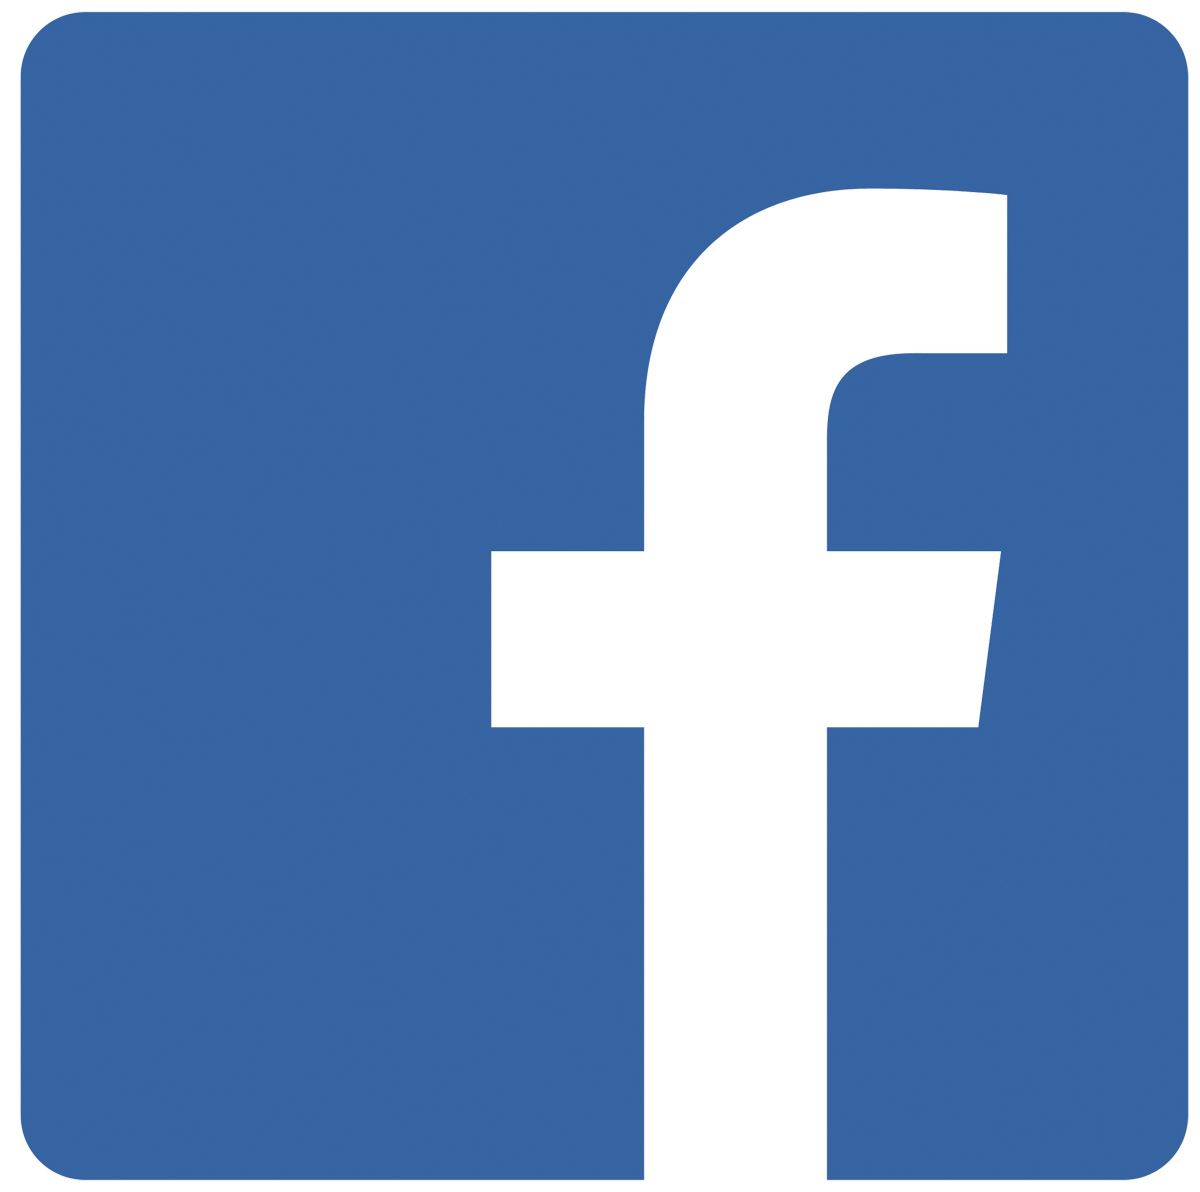 facebook-logotip